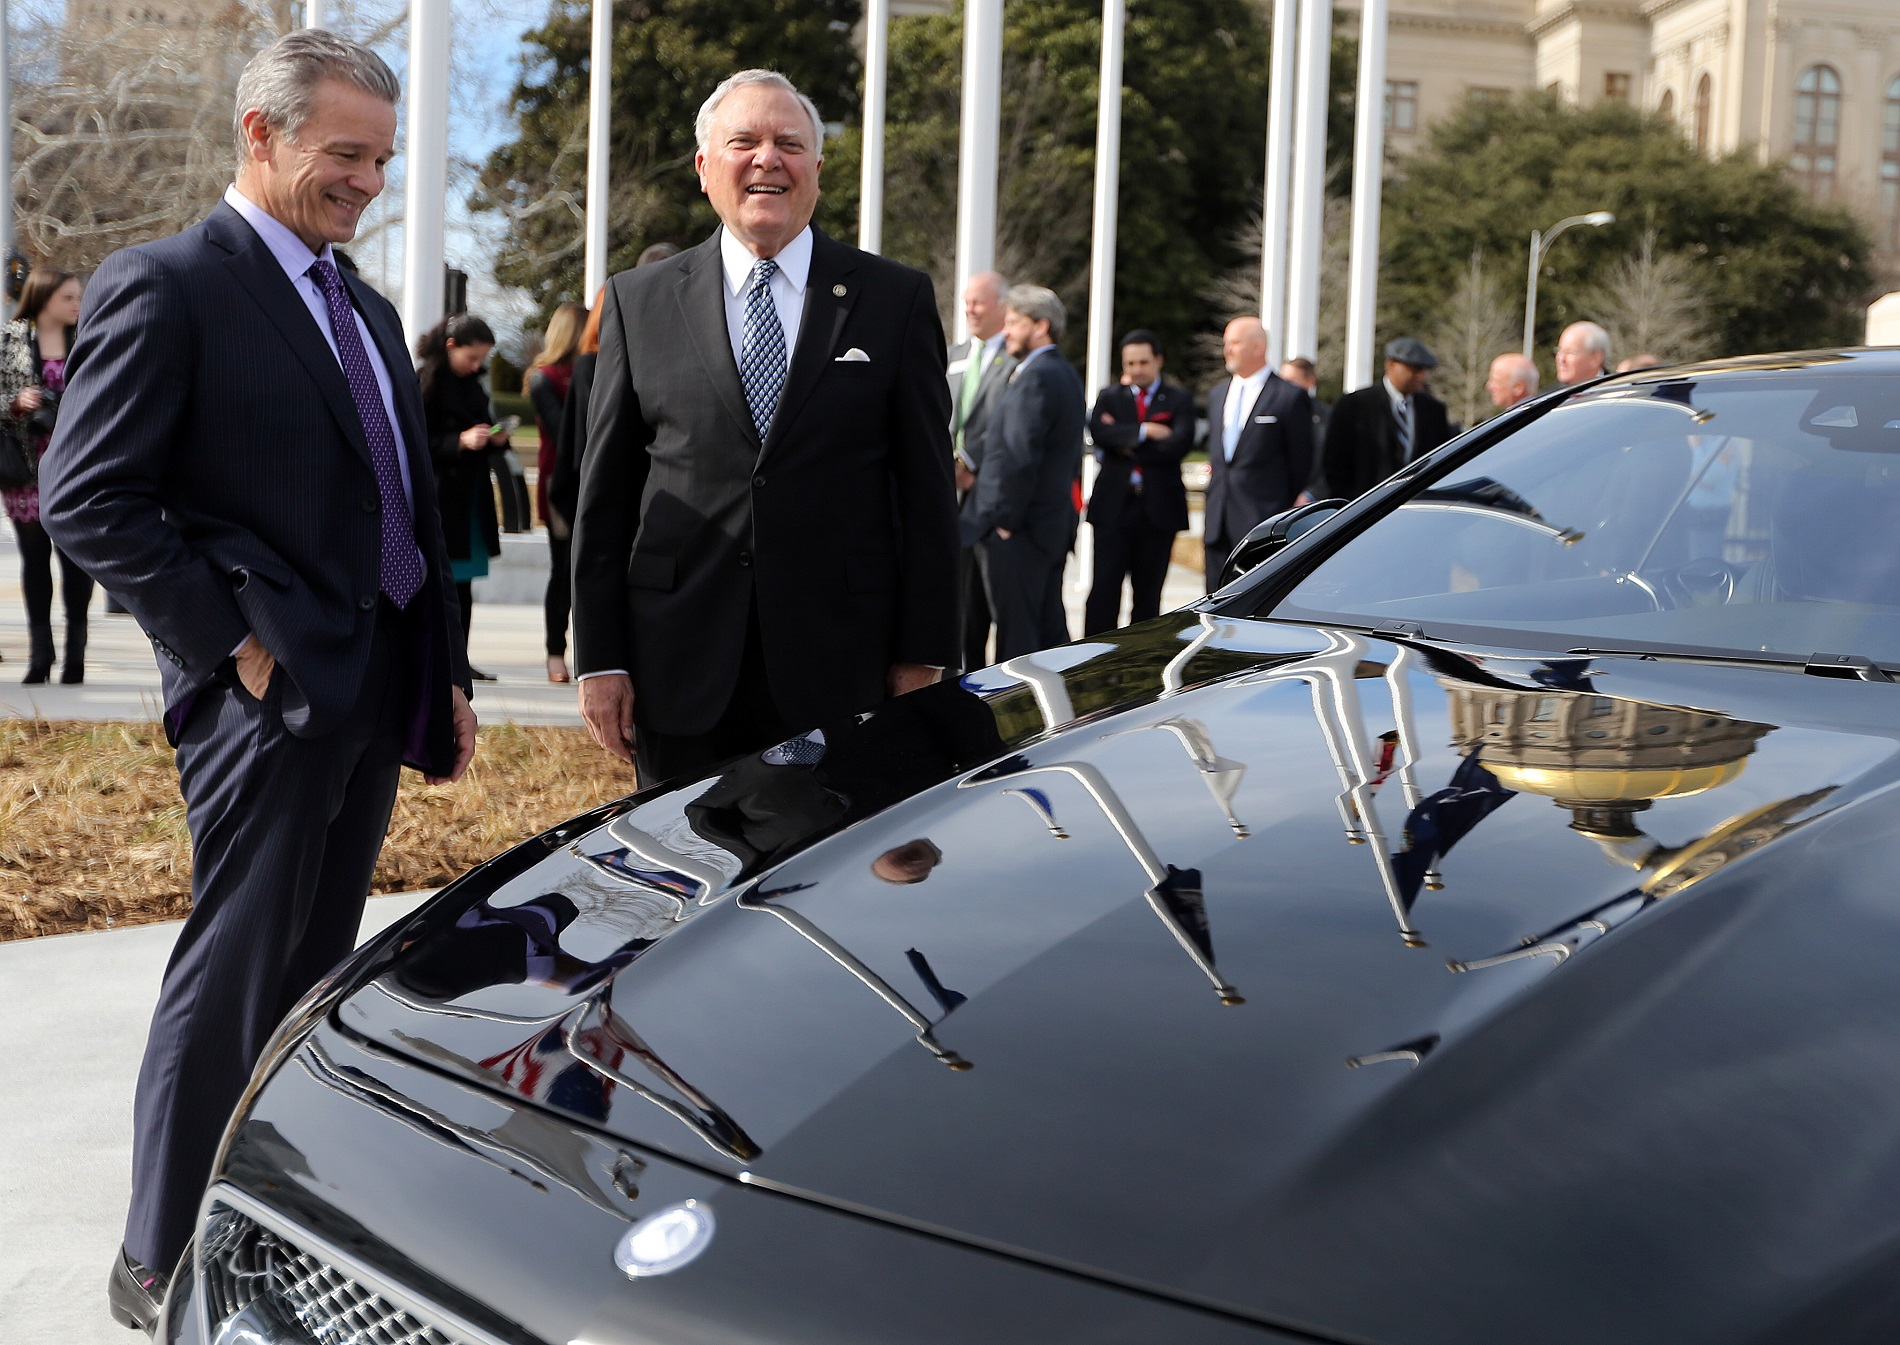 Mercedes-Benz USA CEO Steve Cannon and Gov. Nathan Deal look over a Mercedes at the State Capitol following the announcement the car maker is relocating its headquarters to Sandy Springs. BEN GRAY / AJC